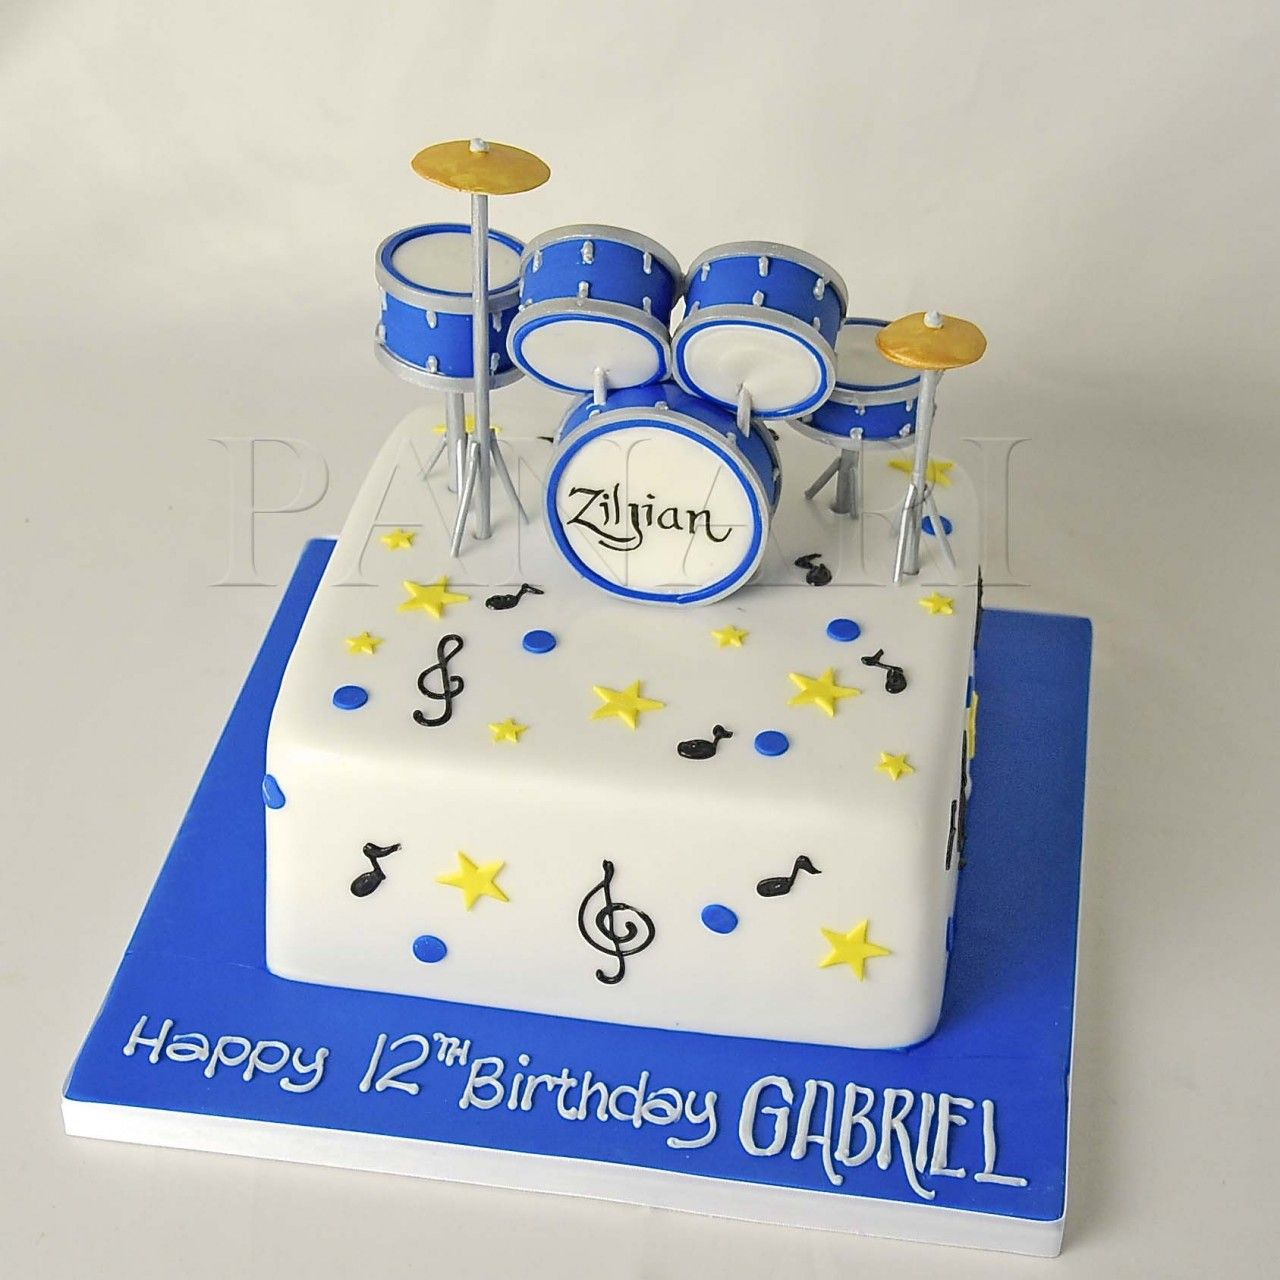 Drum Cake Coopers 4th Birthday Pinterest Cake Drum Cake And